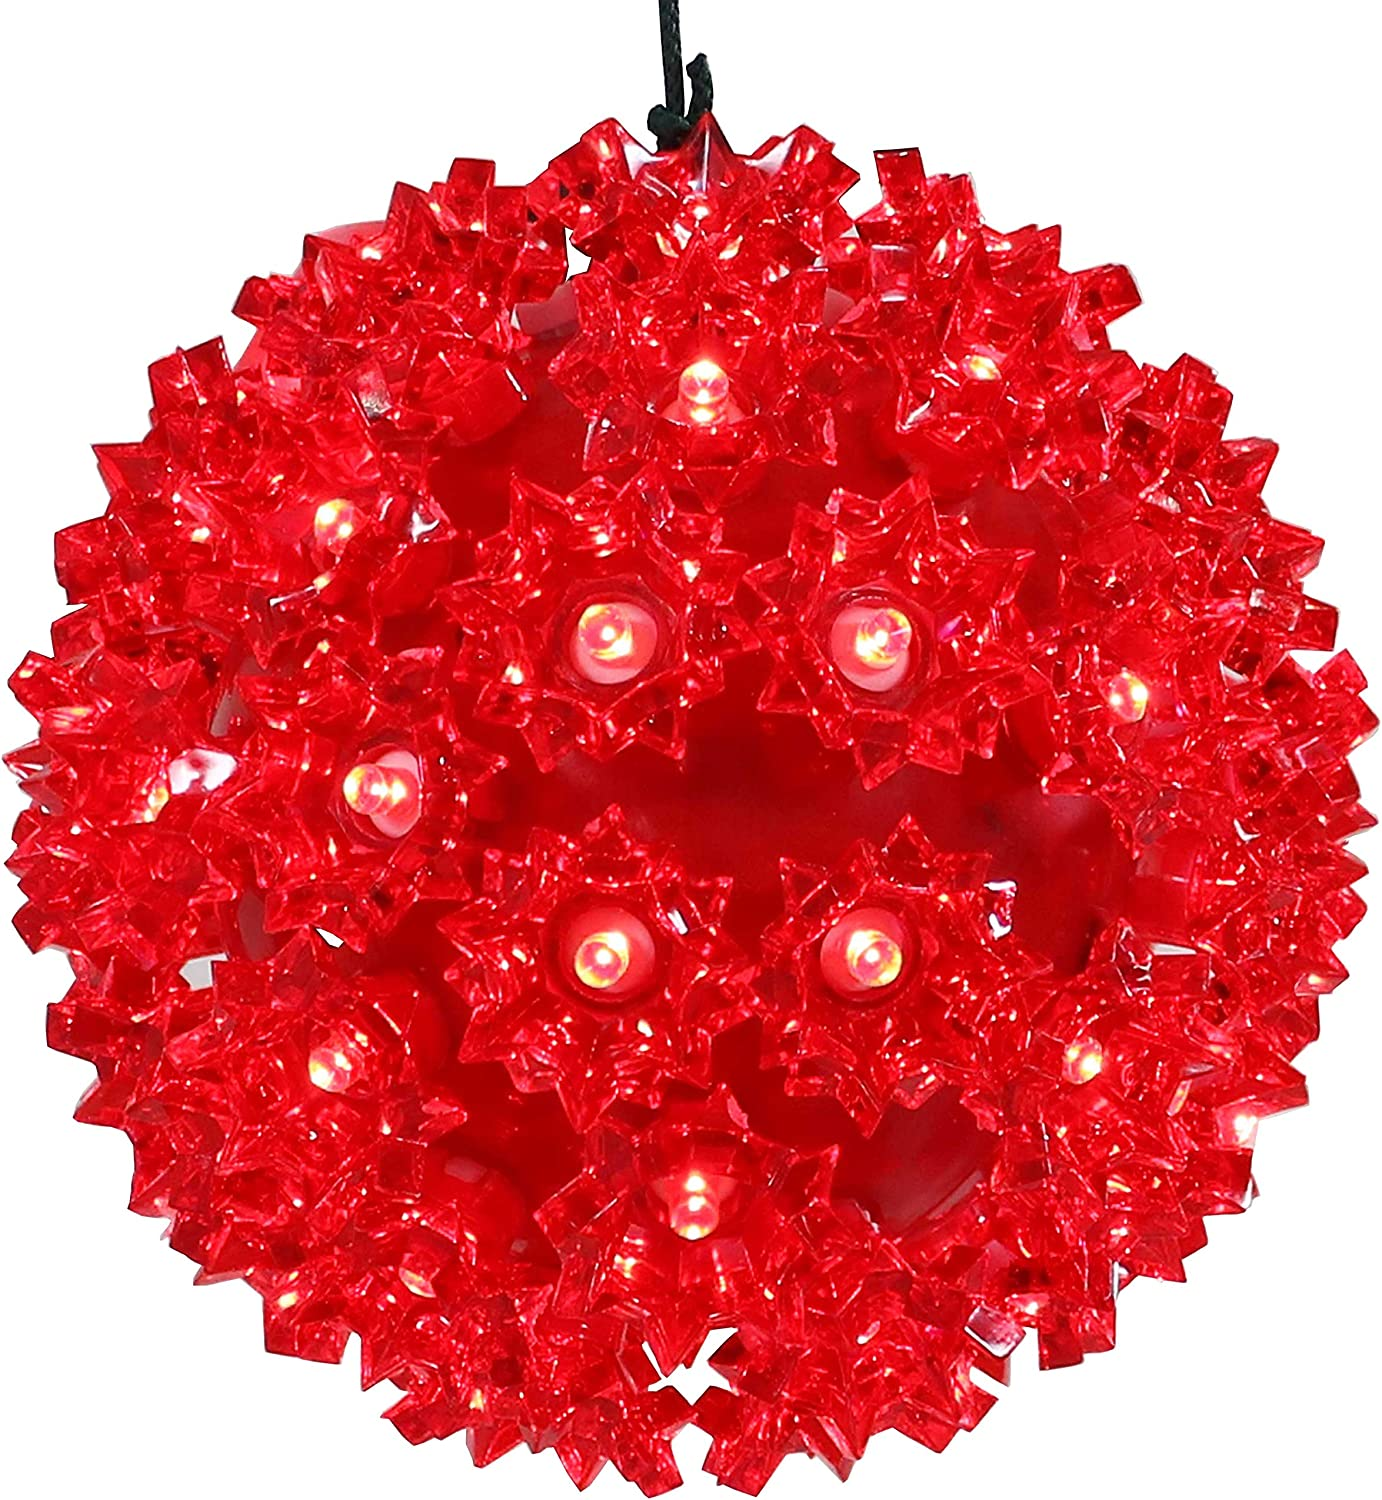 Sunnydaze 5-Inch Colored Lighted Ball Hanging Ornament - 50 LED Bulbs - UL-Listed Indoor/Outdoor Electric Plug-in Decor - Christmas and Holiday Decorations - Red